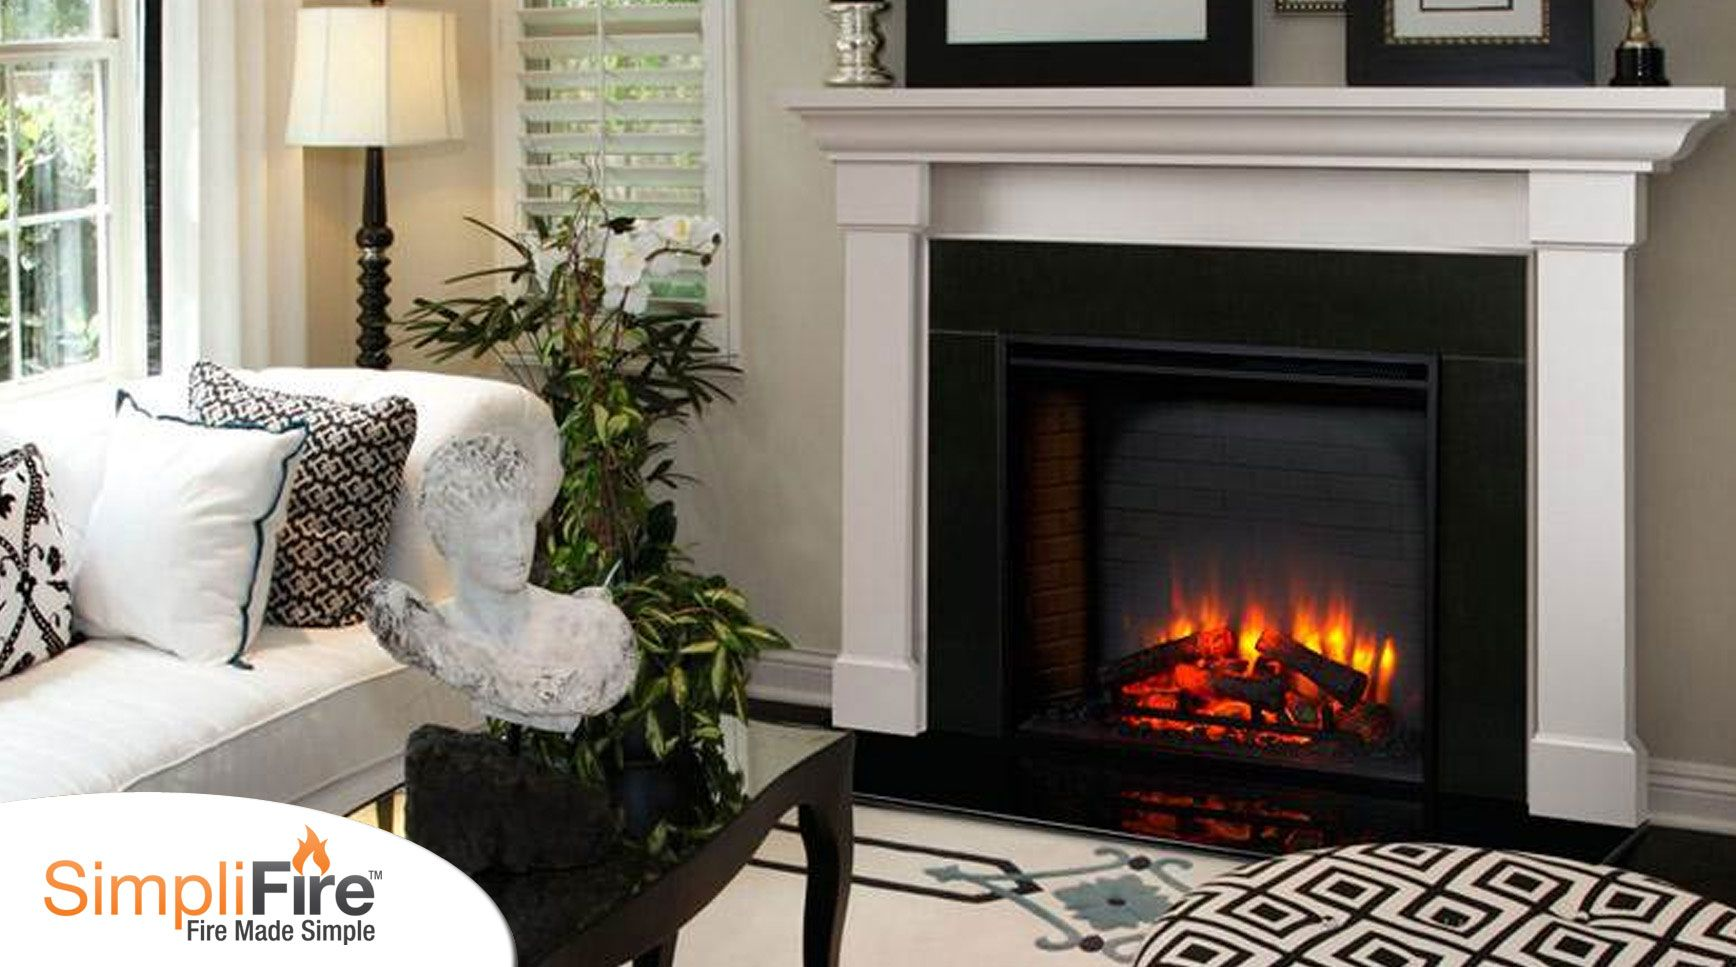 Sf Bi 30 Slide02 Built In Electric Fireplace Electric Fireplace